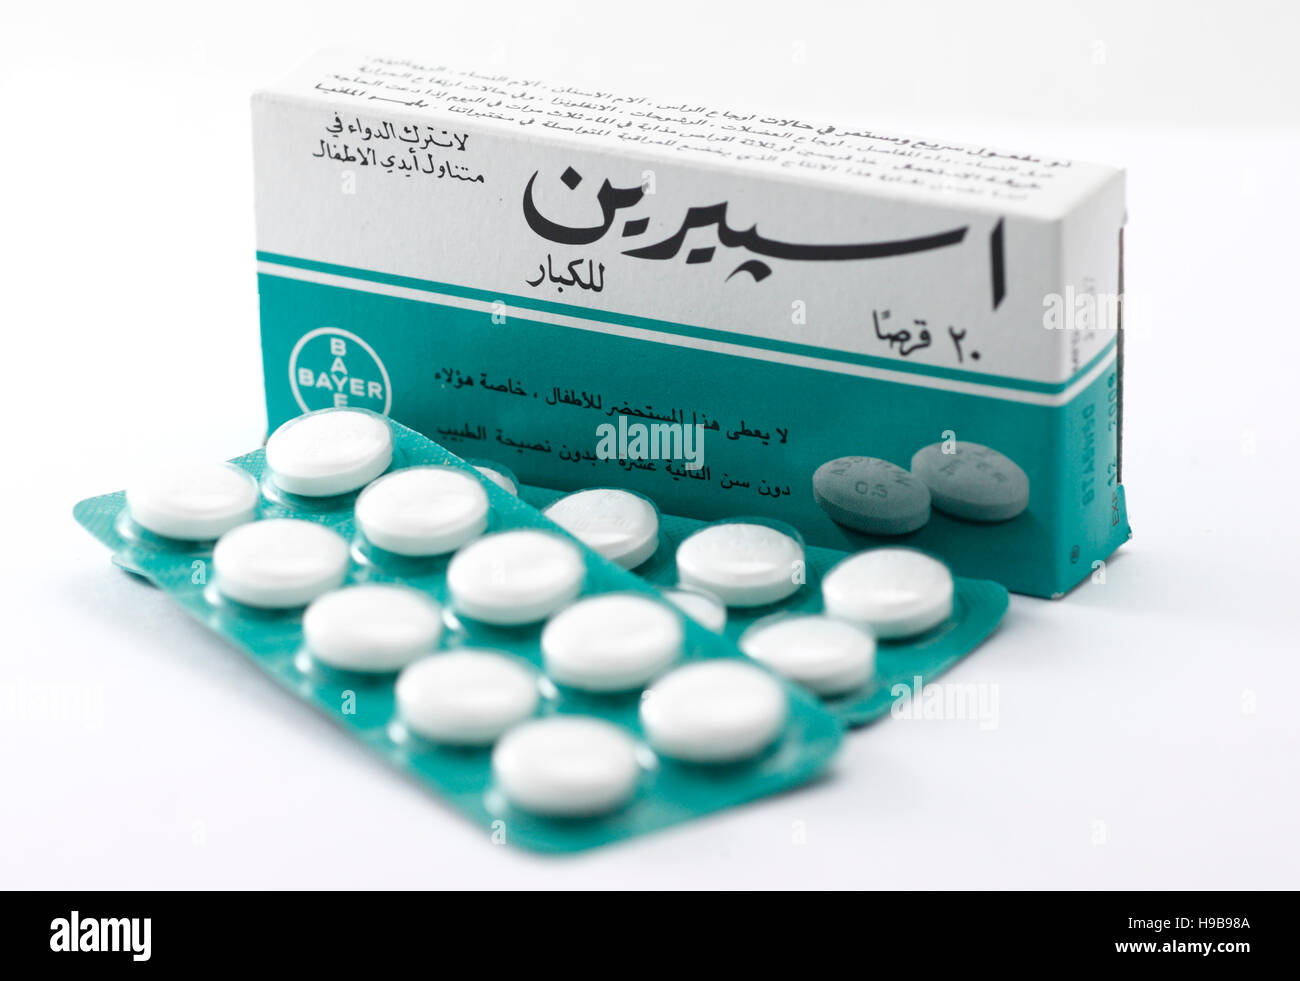 Aspirin package with Arabic writing Stock Photo